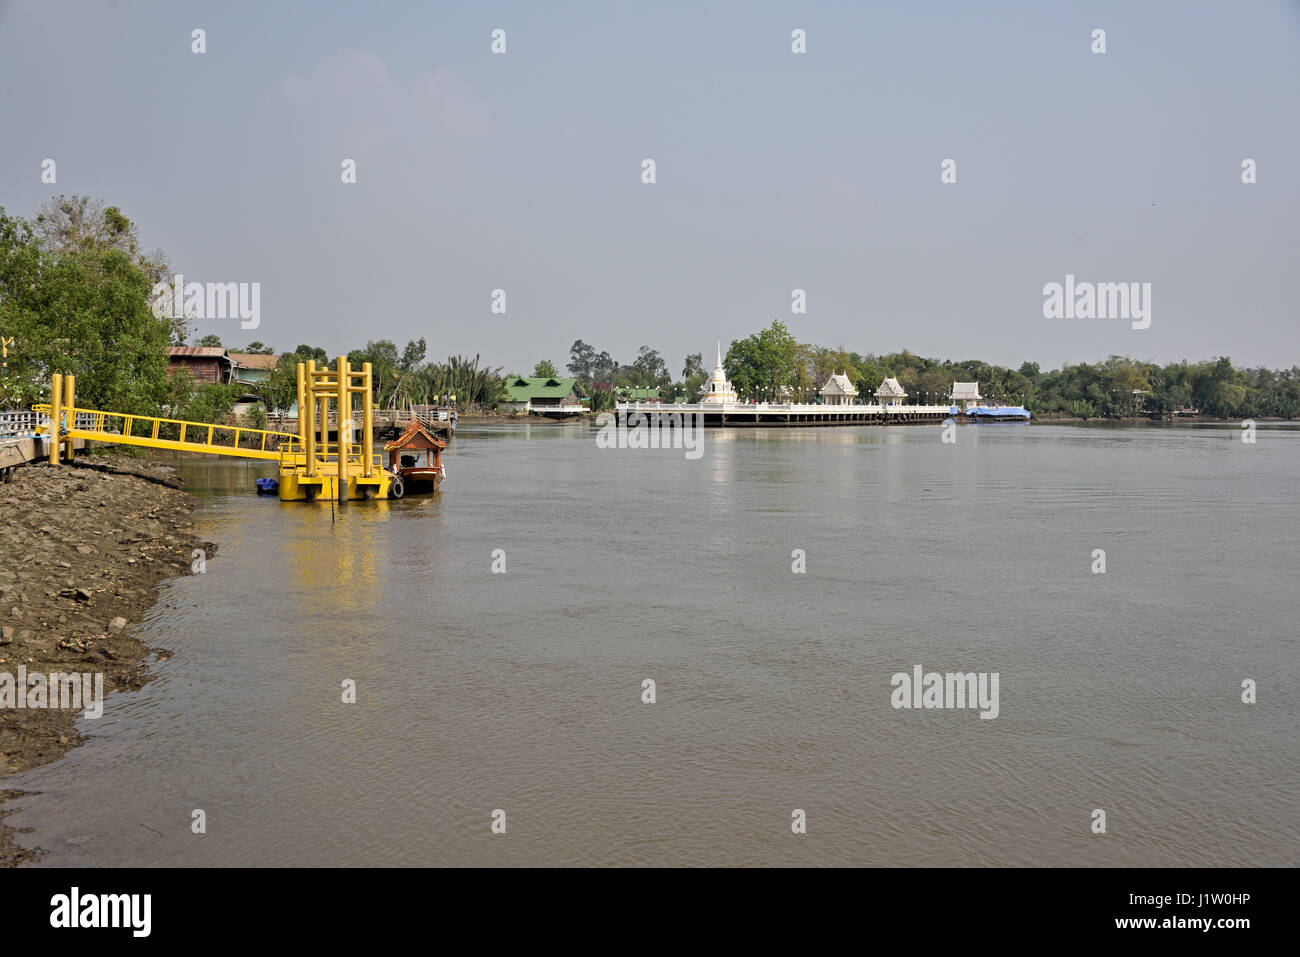 River landing for Wat Paknam Jolo (Golden Temple) in Bang Khla in Chachoengsao in Central Thailand - Stock Image